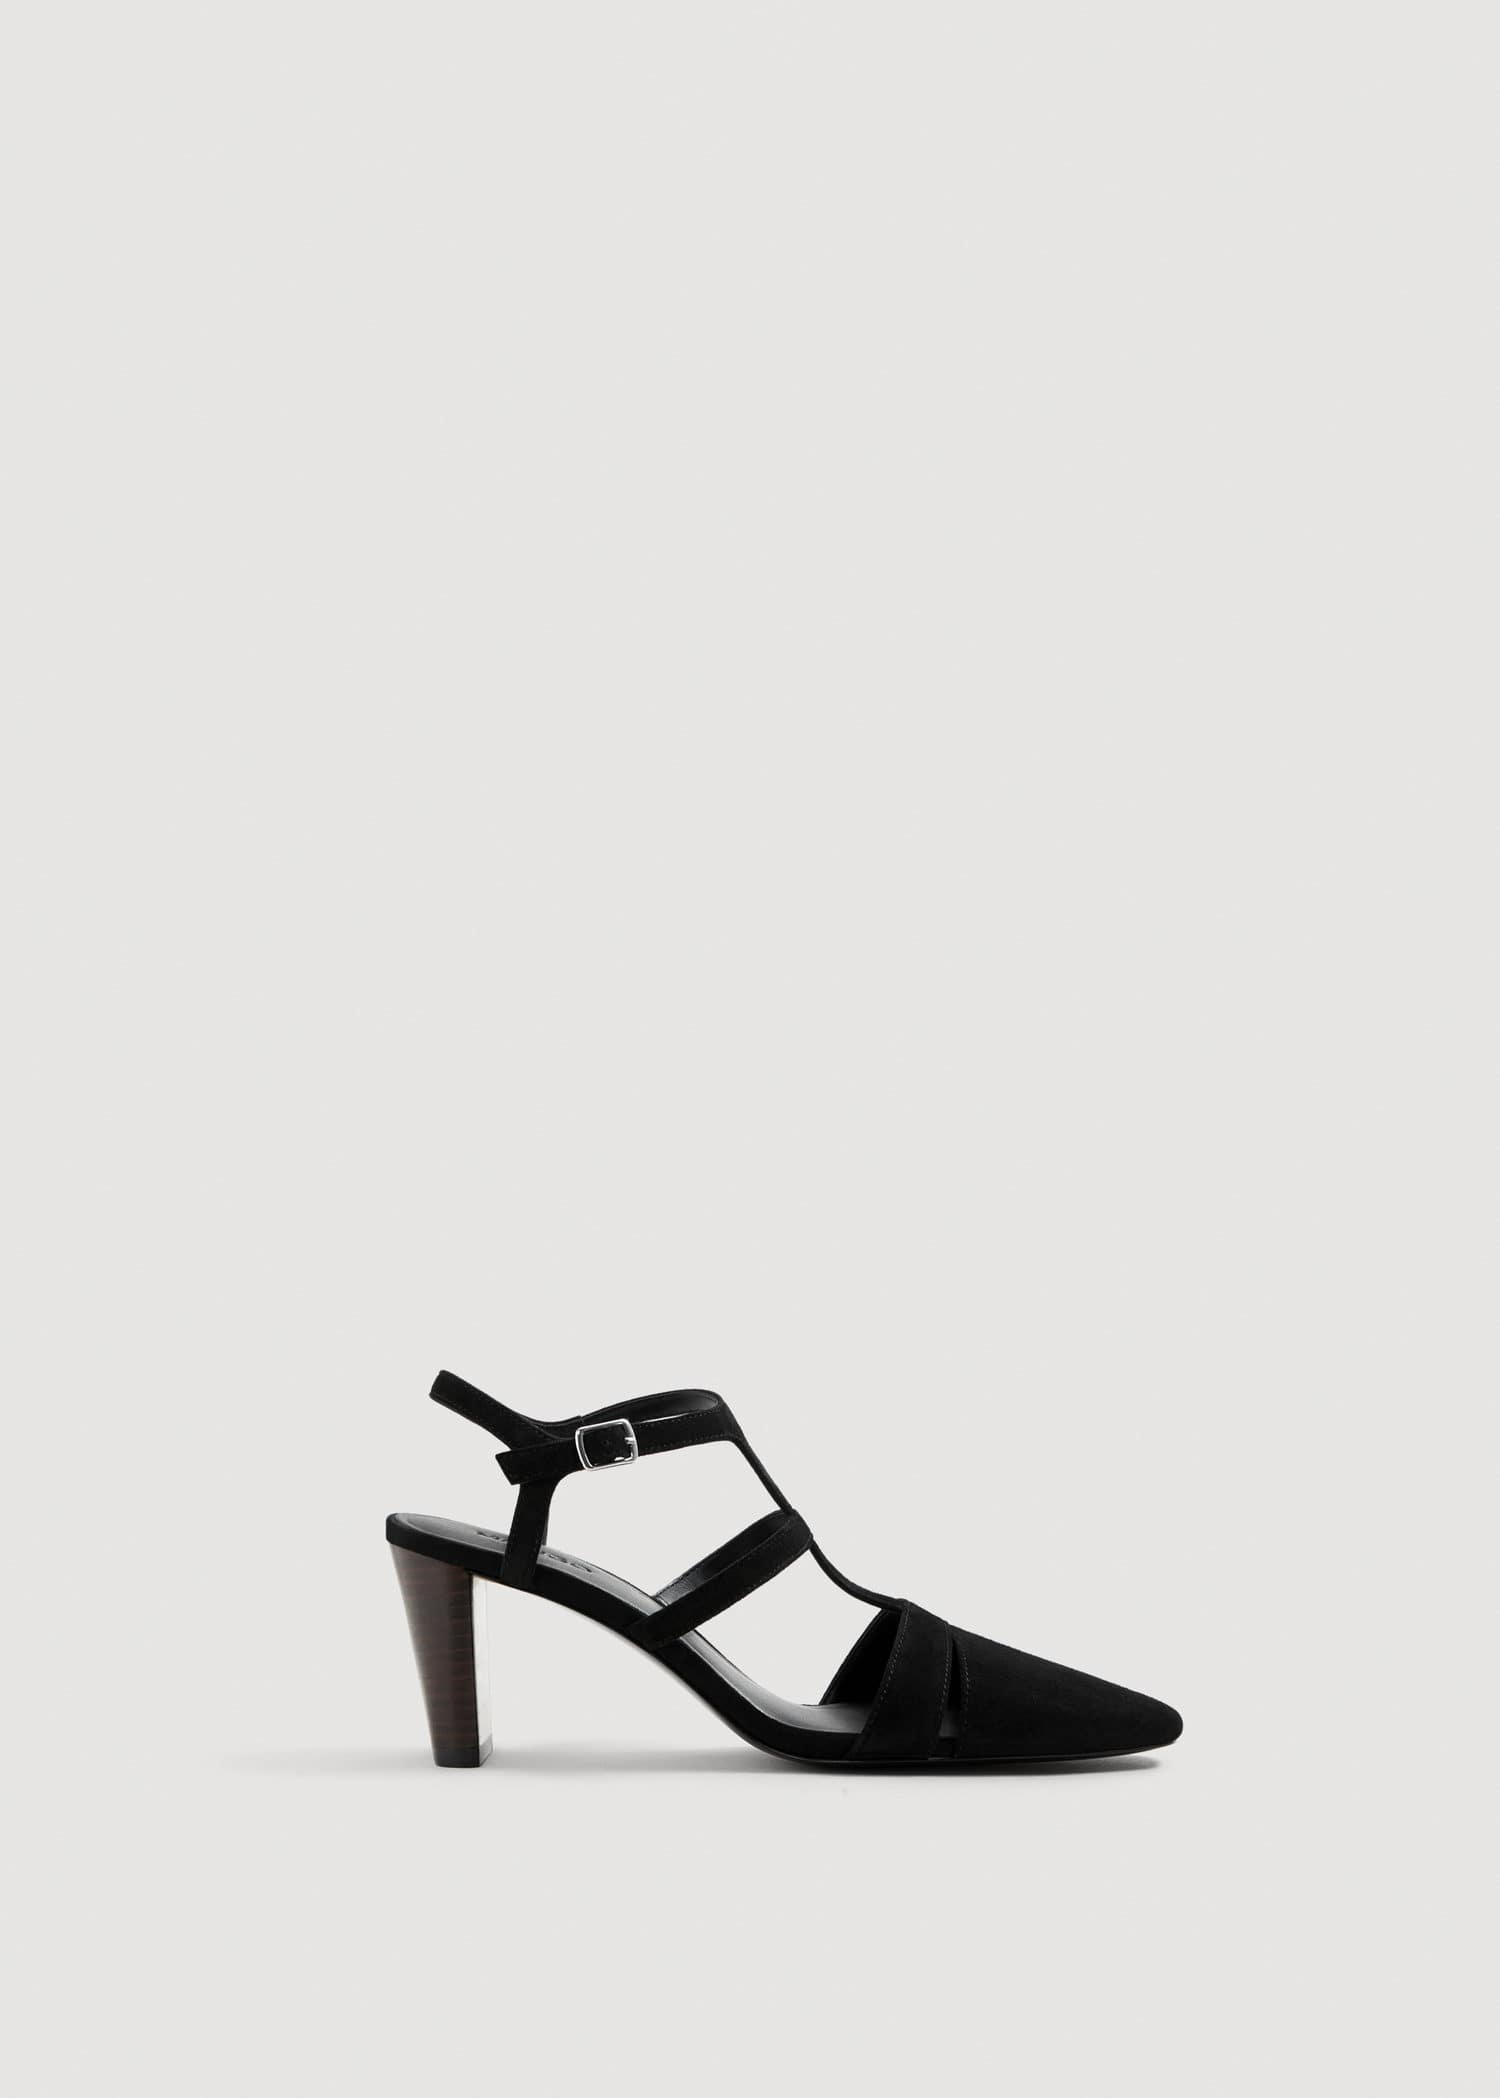 Strap leather shoes Women | Chunky heel shoes, Mango shoes